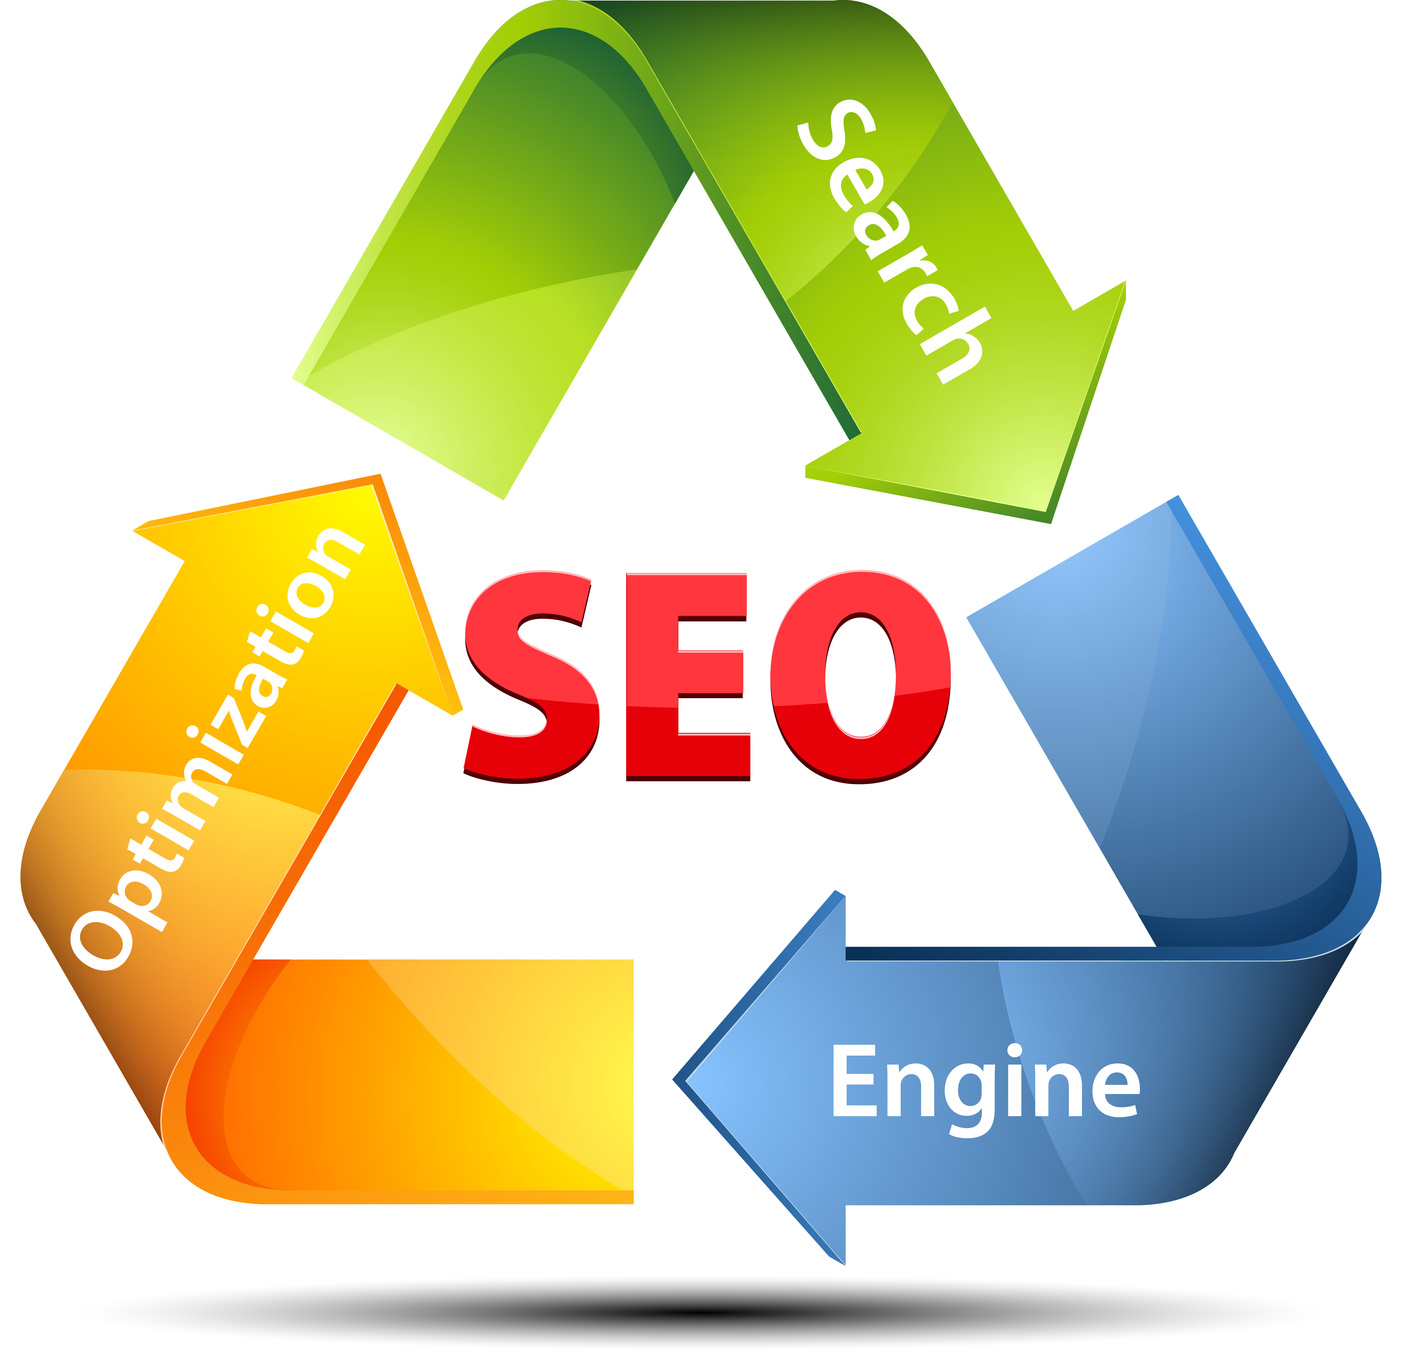 SEO Search Engine Optimization by professional marketer